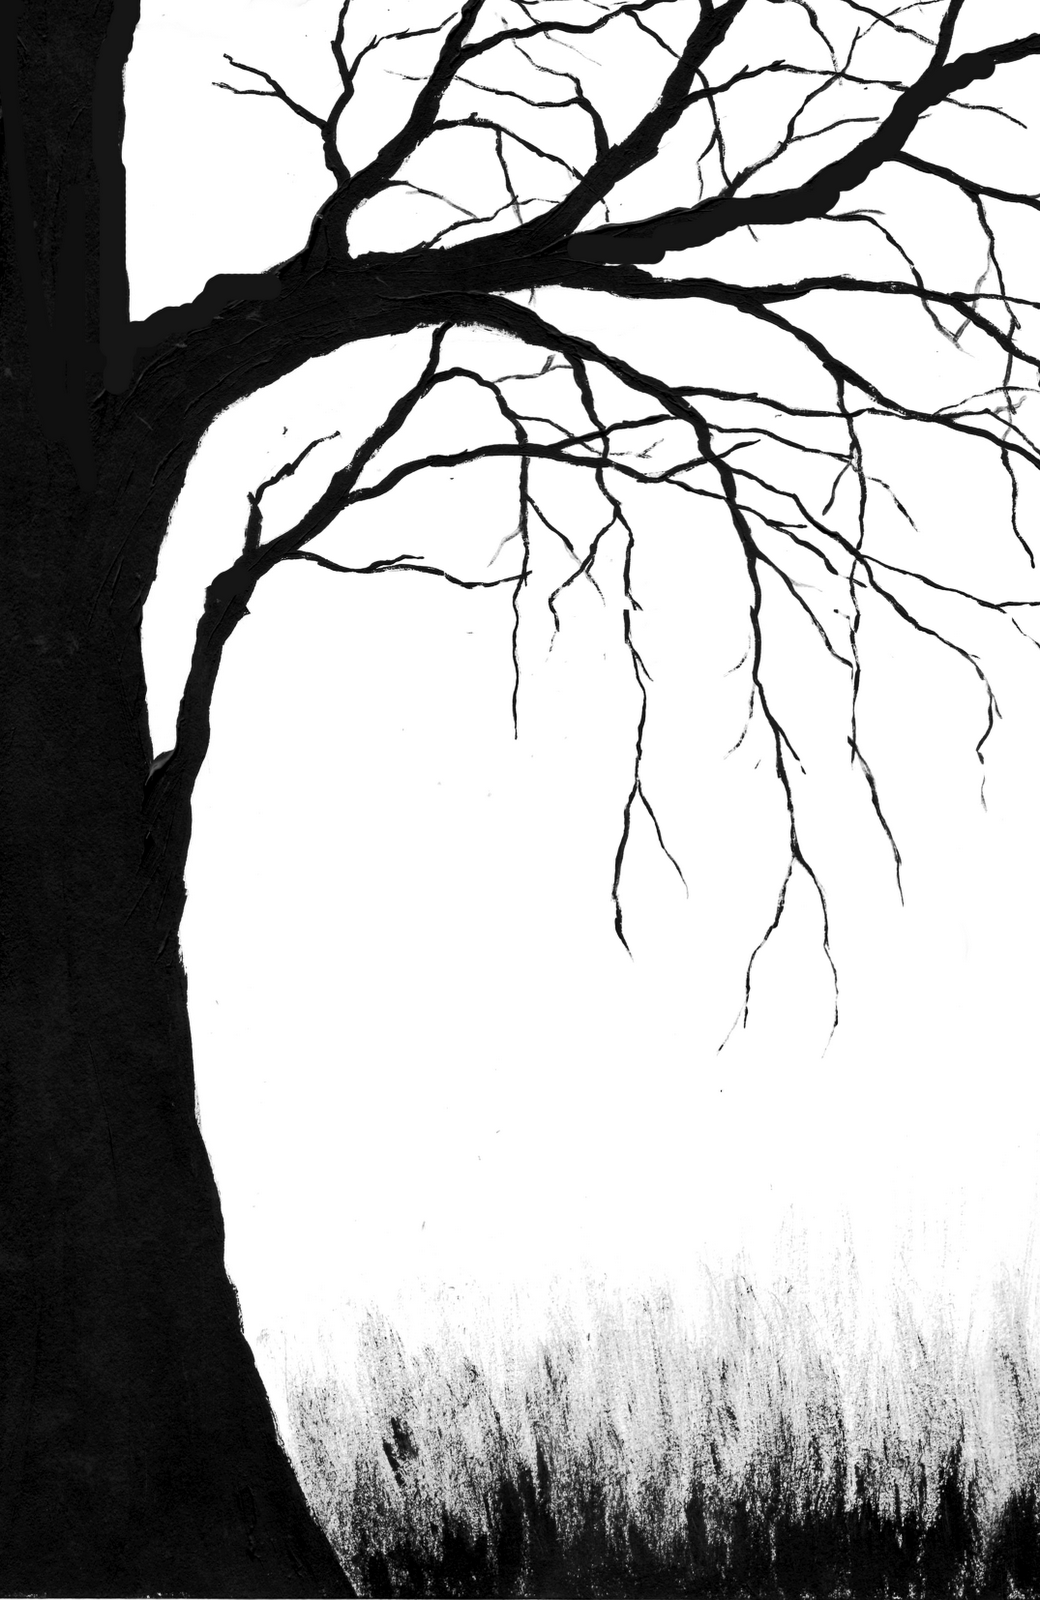 Easy Spooky Tree Drawing And Many More in Various